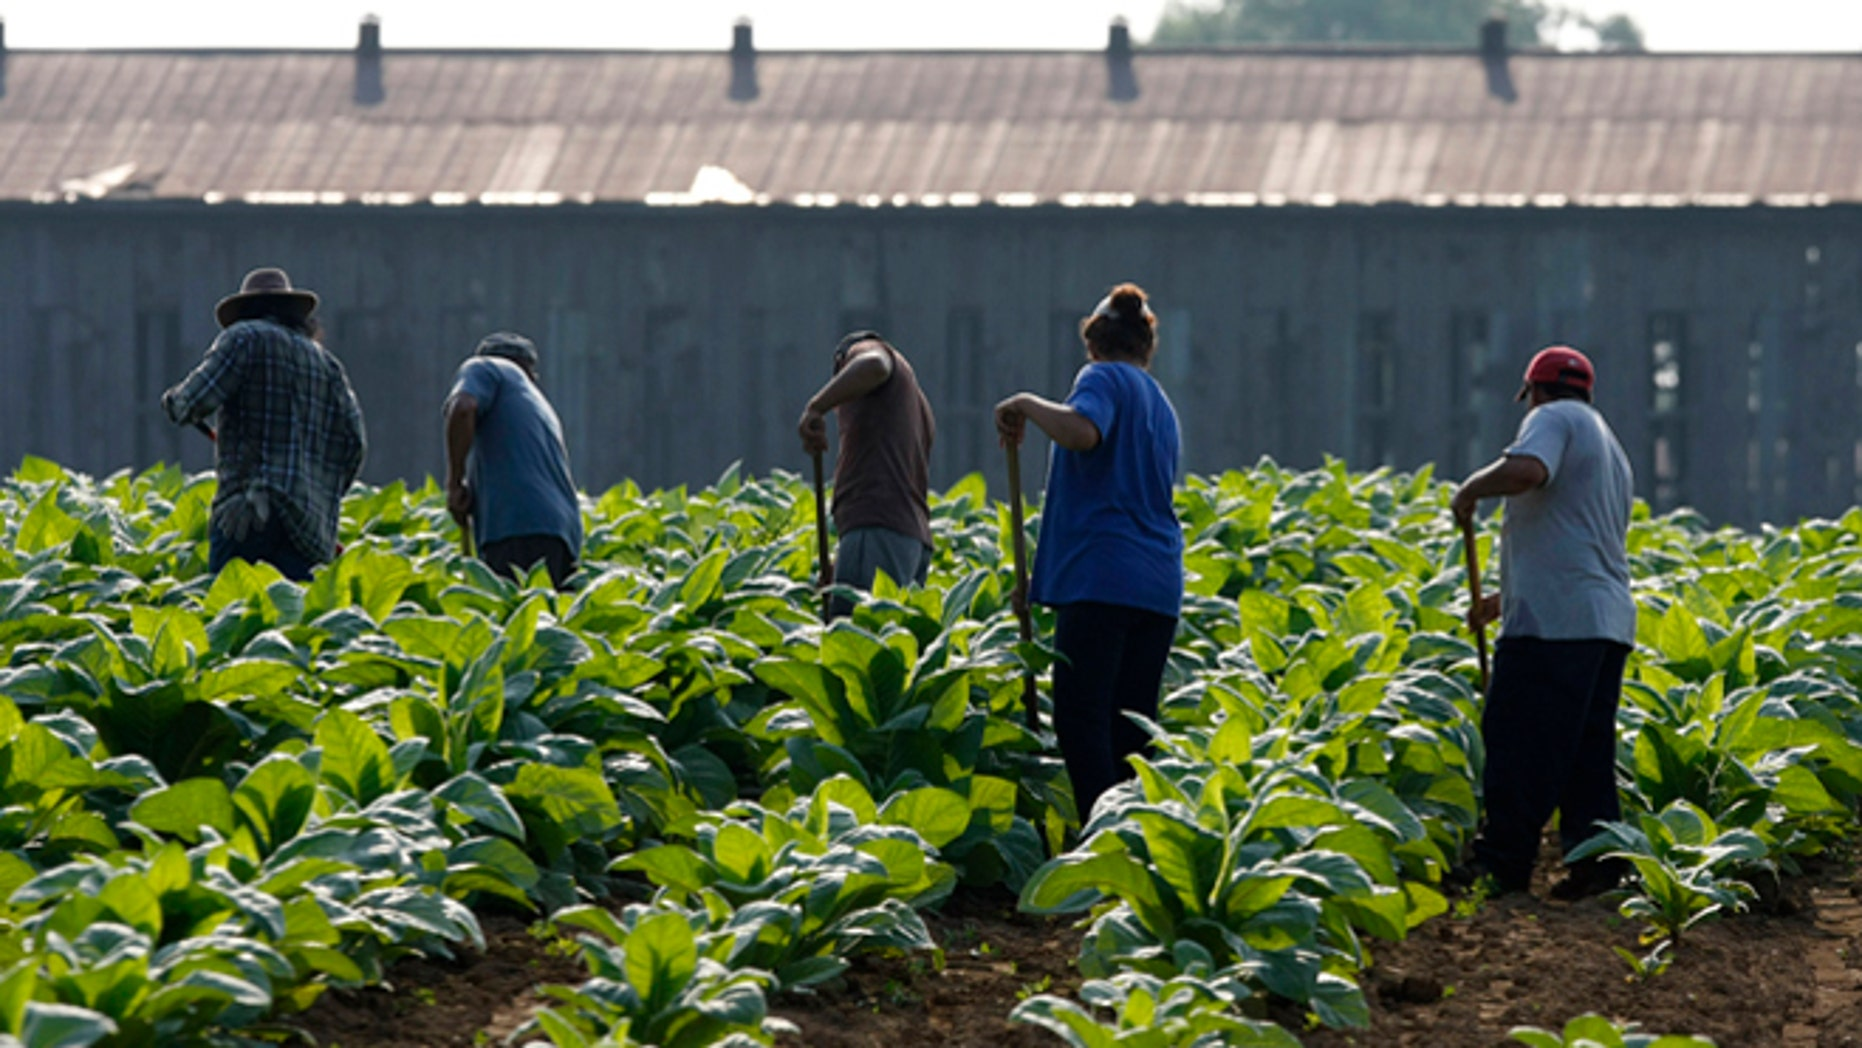 In front of the backdrop of the barn in which the burley will be stored, a group of farm workers makes their way across a tobacco field hoeing weeds out of the rows in the early morning Monday, July 11, 2011, near Sparta, Ky. Much of Kentucky is expected to be hit with high heat throughout the week.  (AP Photo/Ed Reinke)